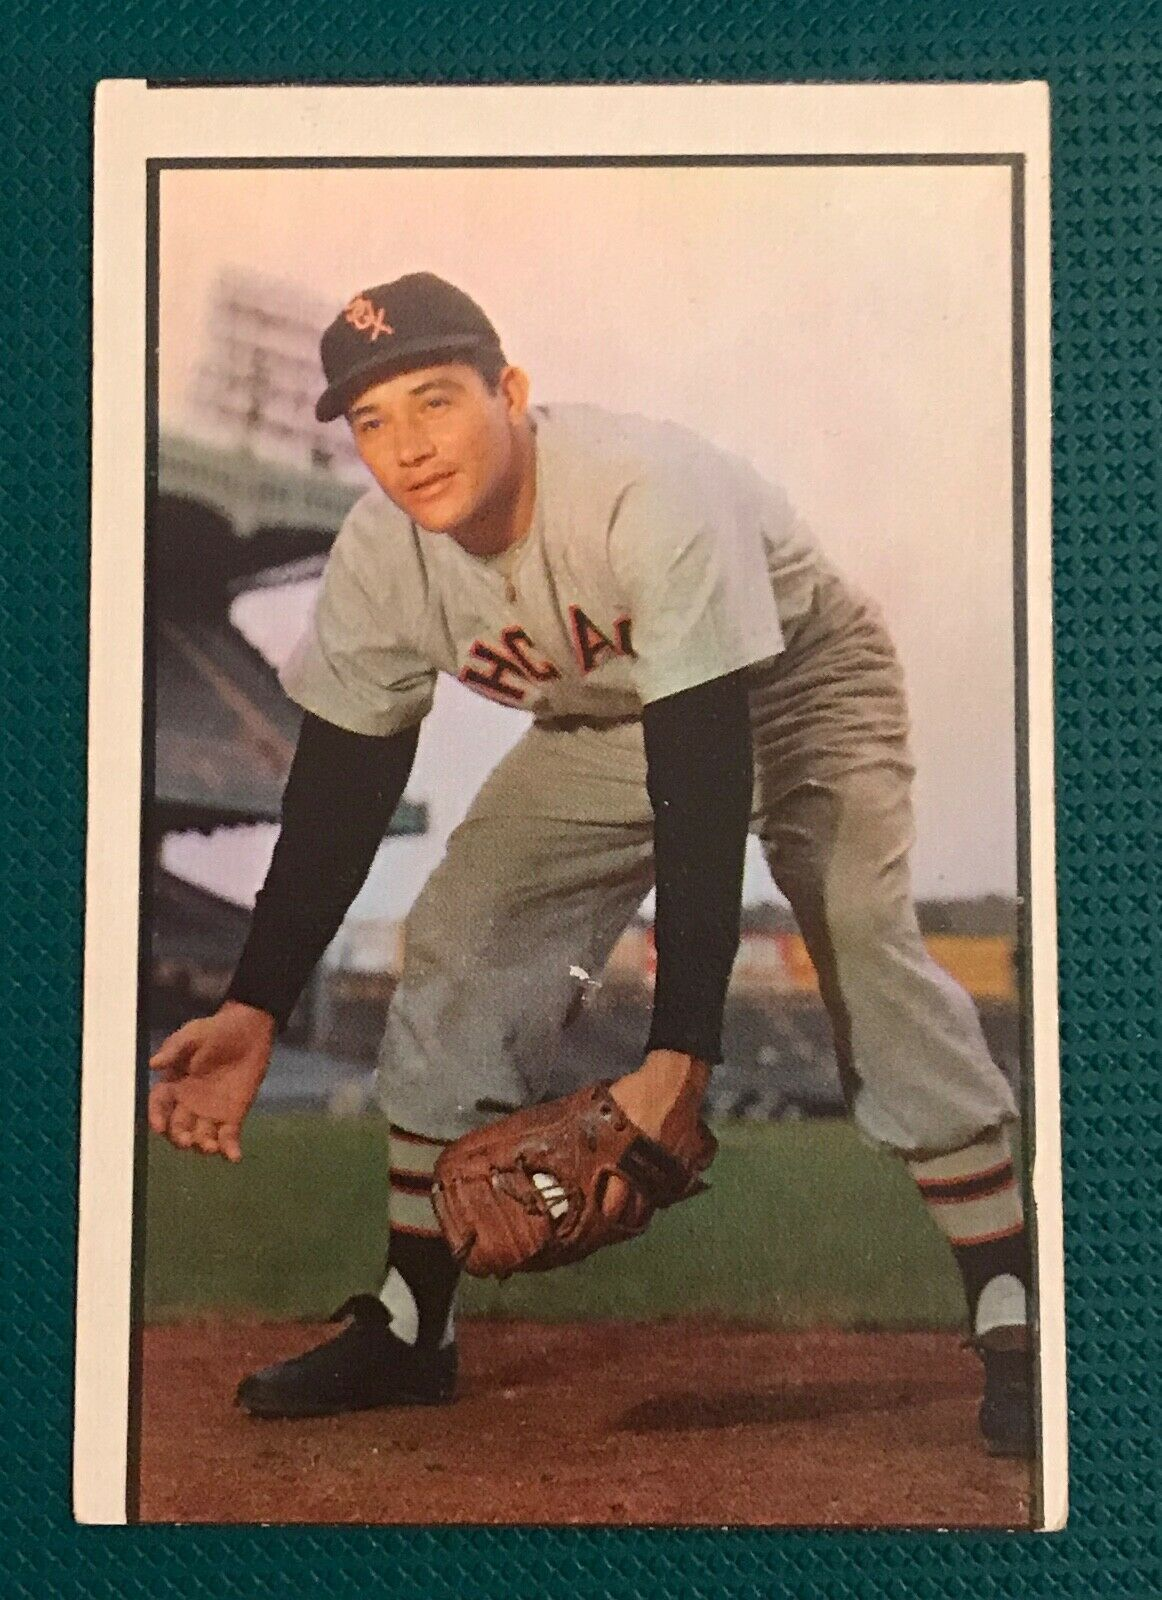 Primary image for 1953 Bowman Color #54 Chico Carrasquel Chicago White Sox Baseball Card